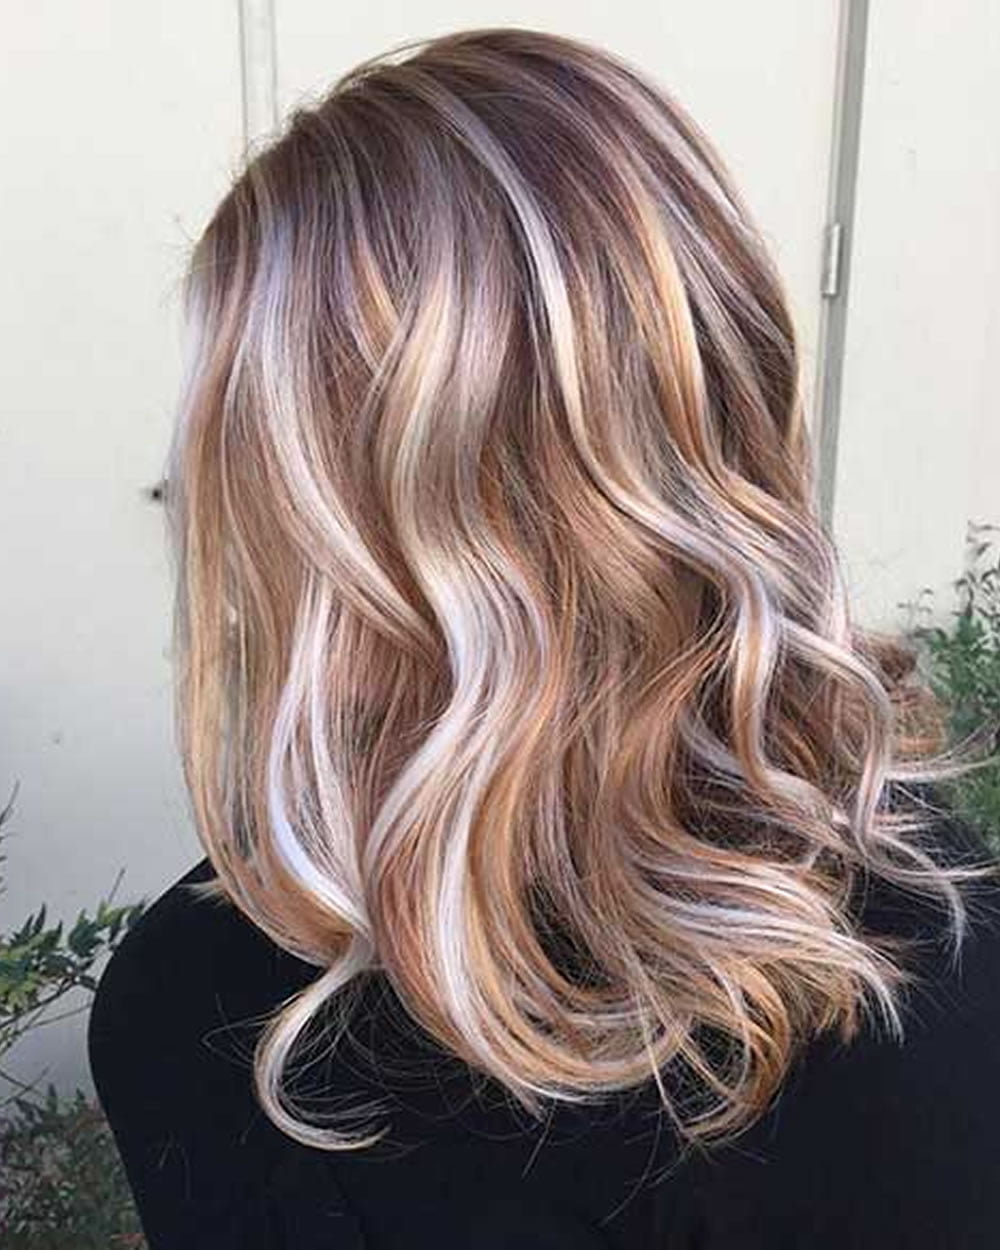 25 Trendy Very Long Hairstyles and Hair Color ideas for 2018-2019 ...